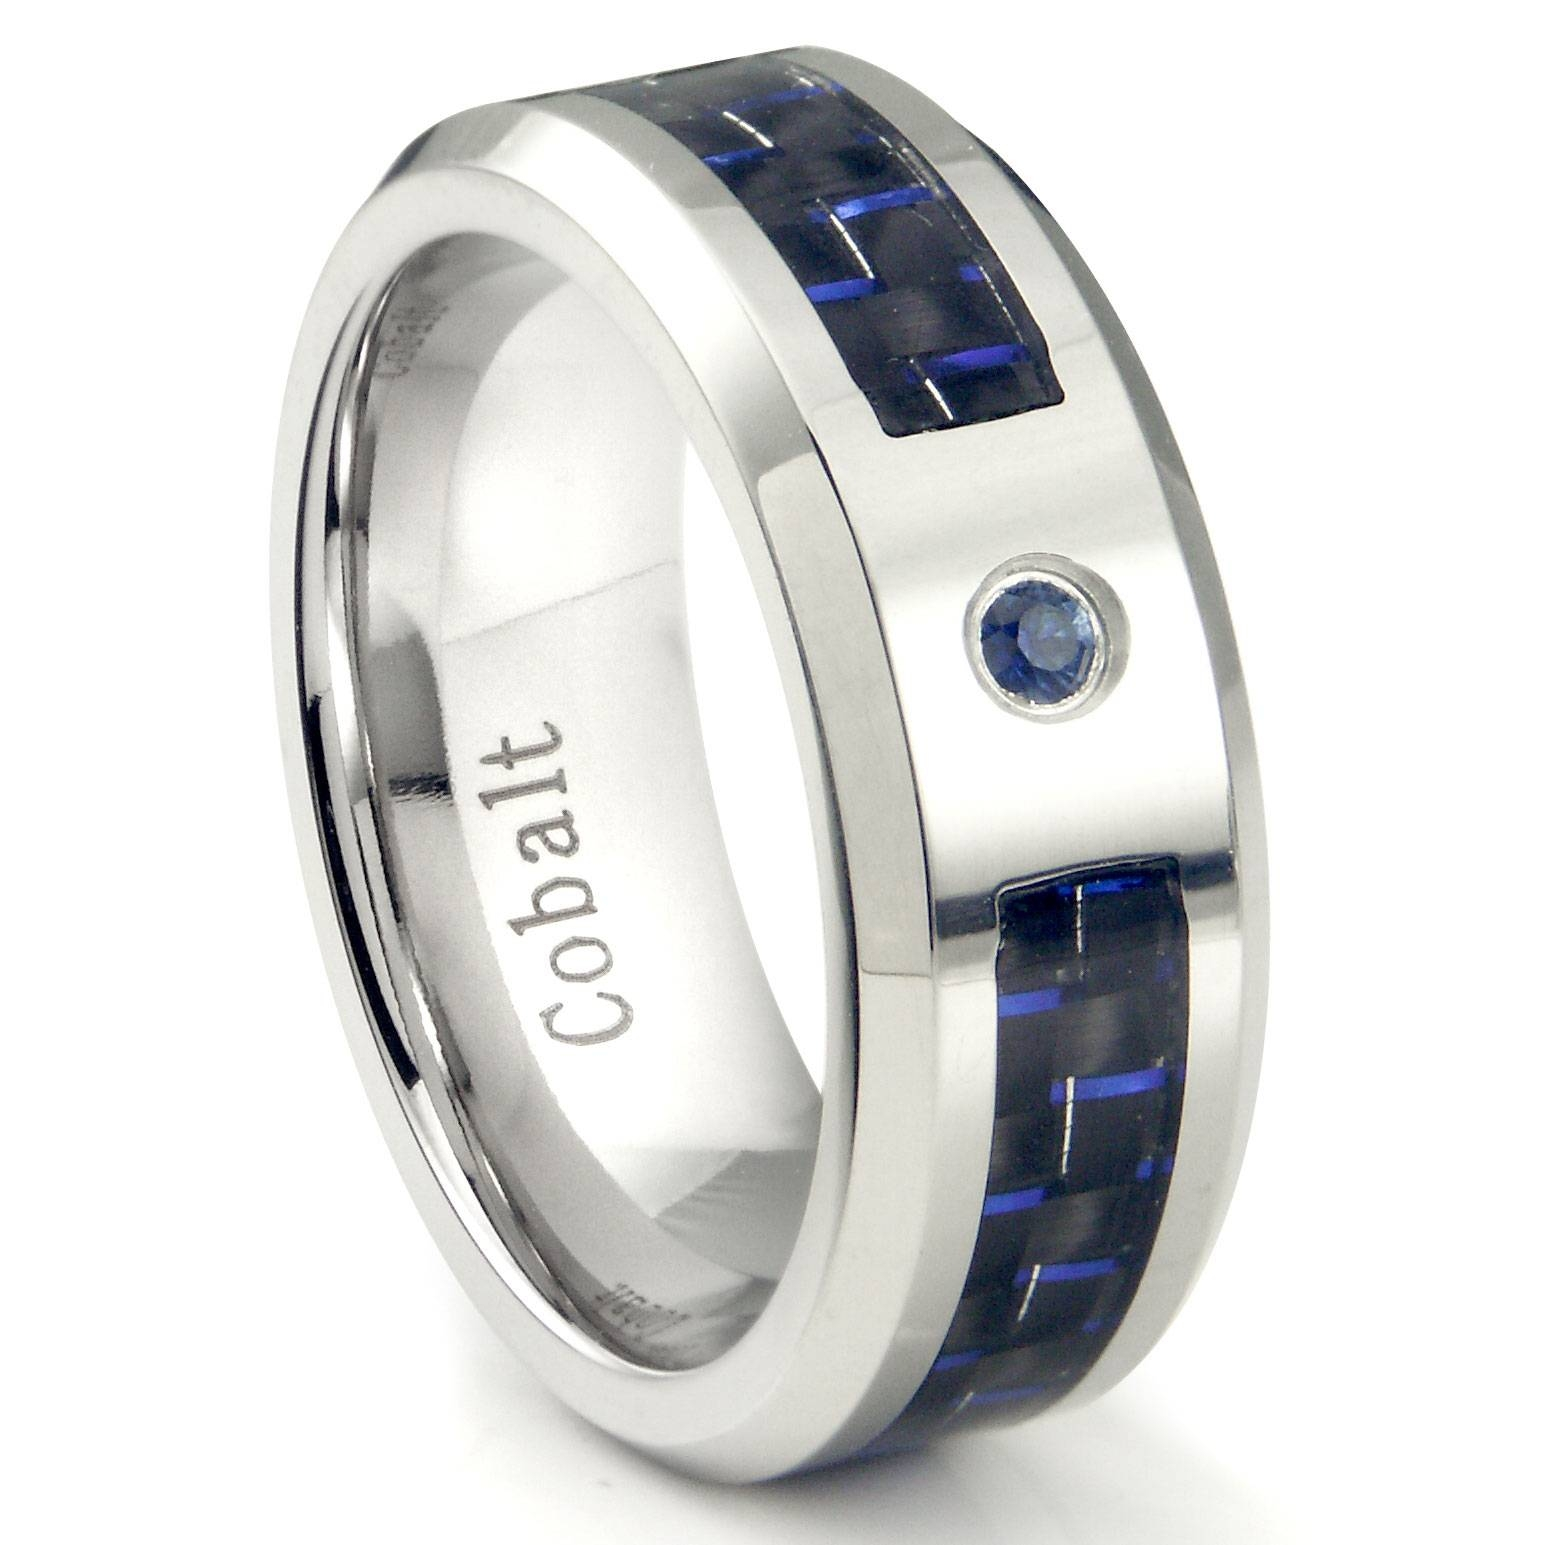 Cobalt Chrome 8mm Blue Sapphire & Blue Carbon Fiber Inlay Wedding Intended For Blue Sapphire Men's Wedding Bands (View 9 of 15)